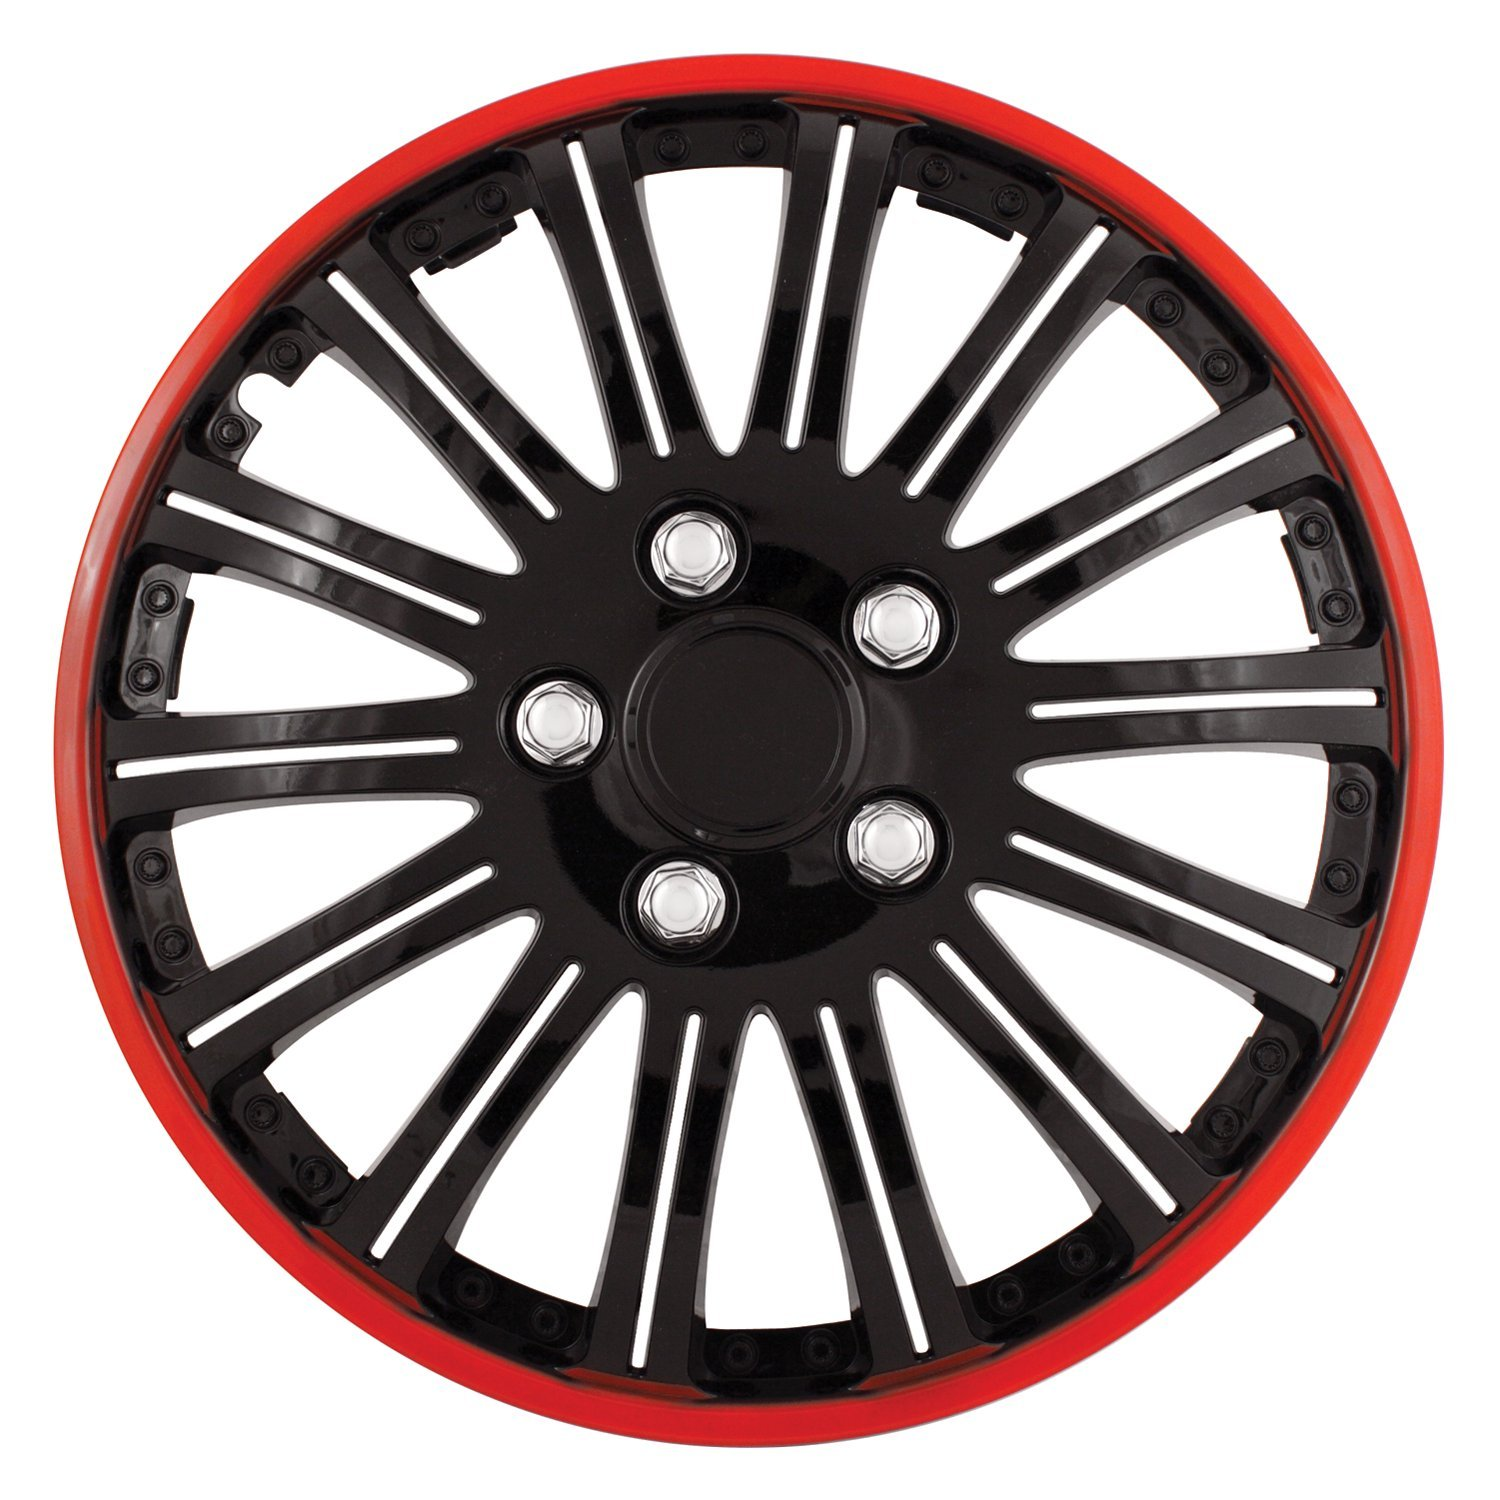 Pilot Automotive WH527-15RE-BX Cobra Black Chrome 15' Wheel Cover with Red Accent, (Set of 4)